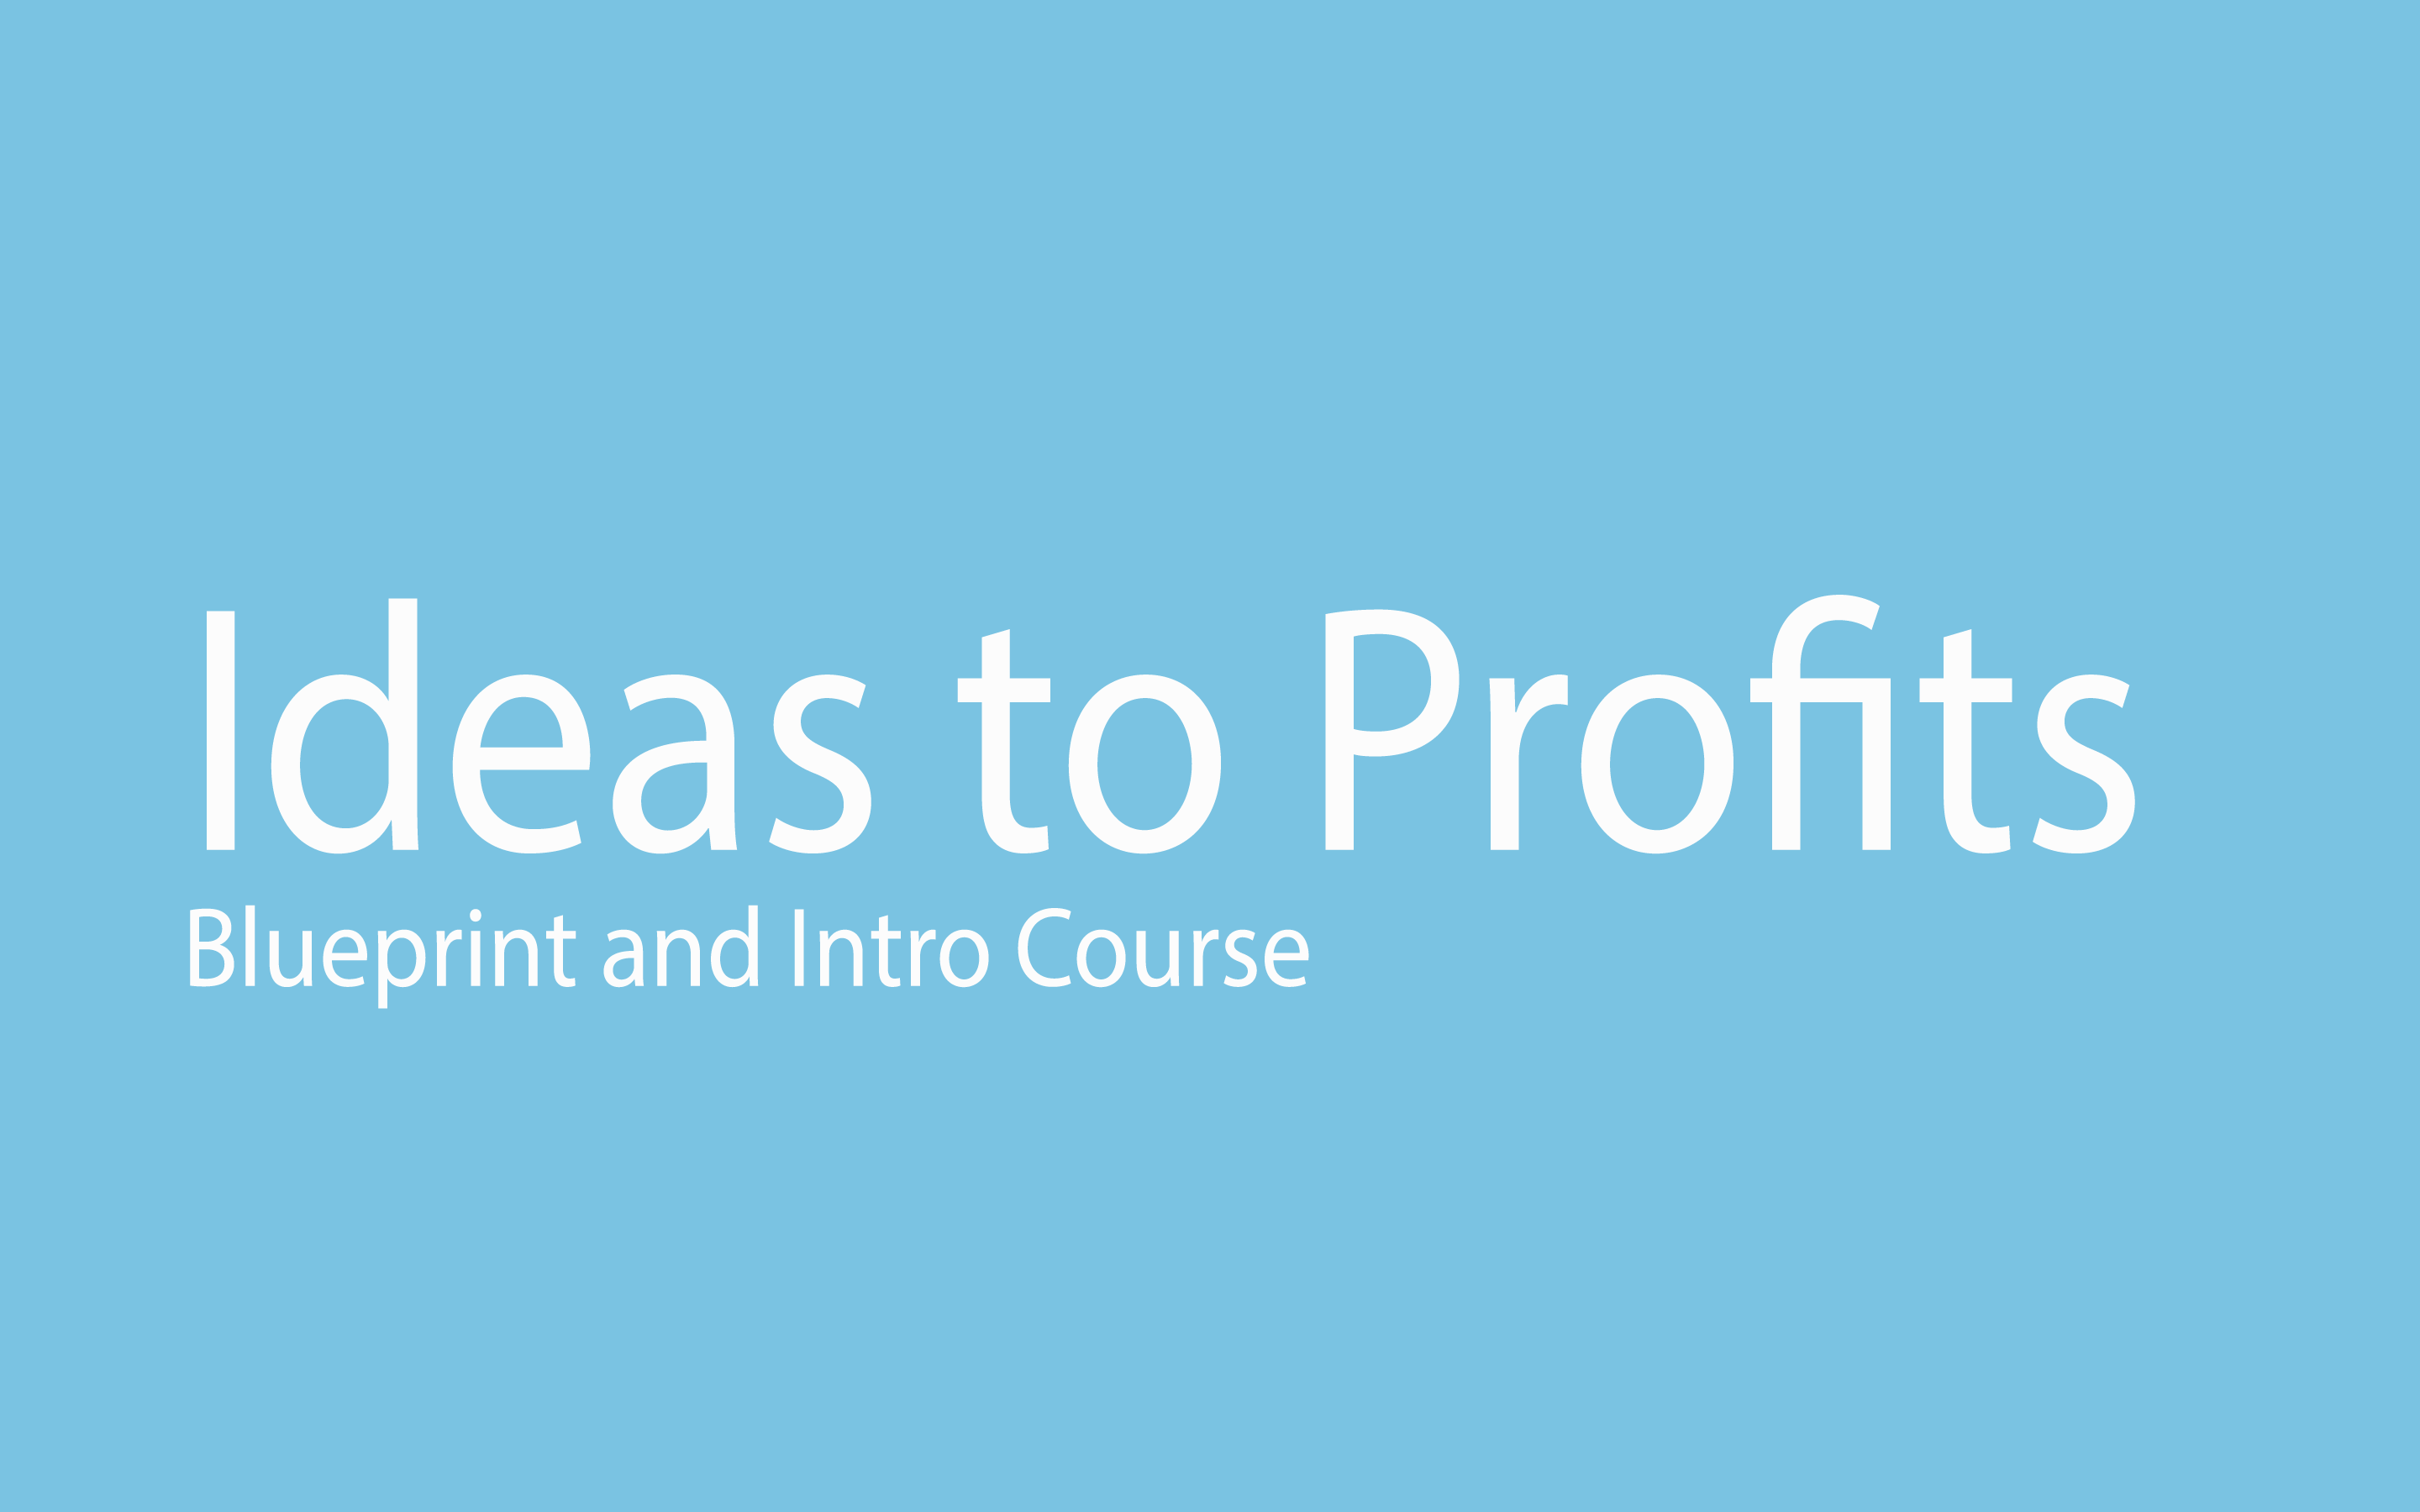 Ideas to Profits